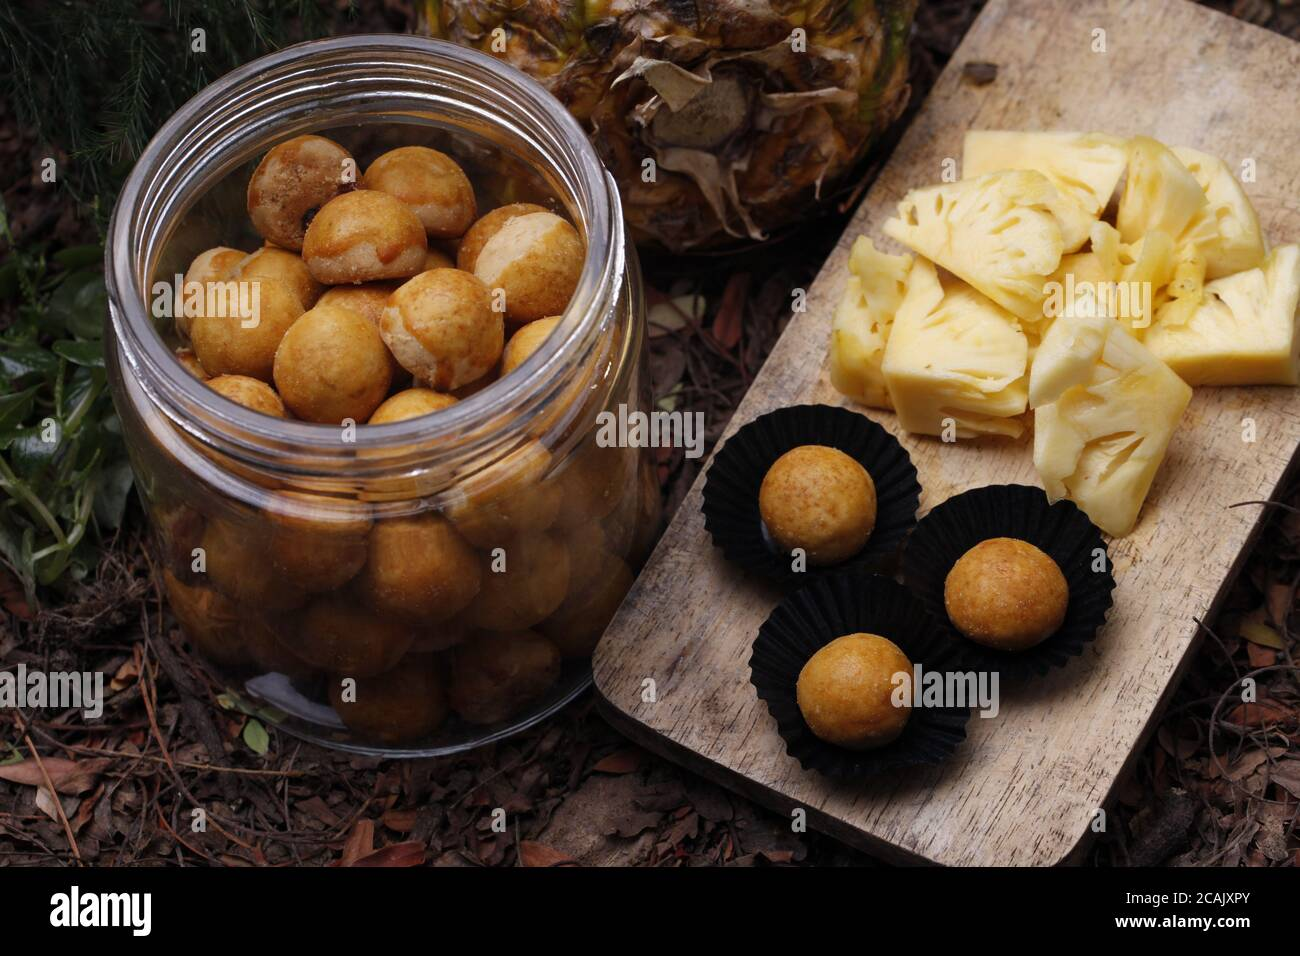 Page 10 Eid Mubarak High Resolution Stock Photography And Images Alamy